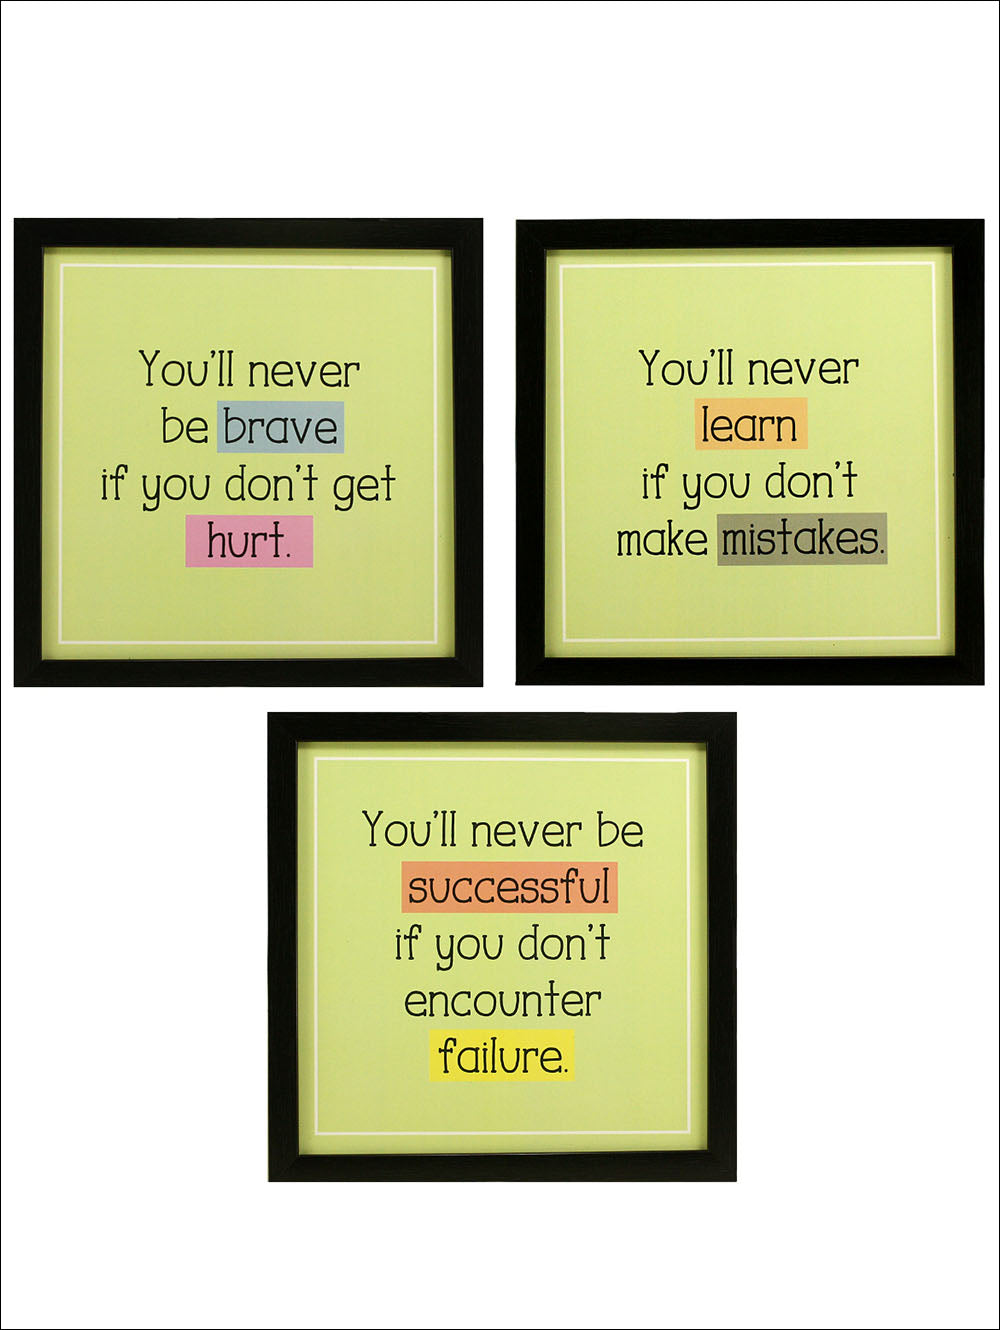 Indianara 3 Piece Set Of Framed Wall Hanging Hurt Mistakes Failure Motivational Spiritual Art Prints Without Glass